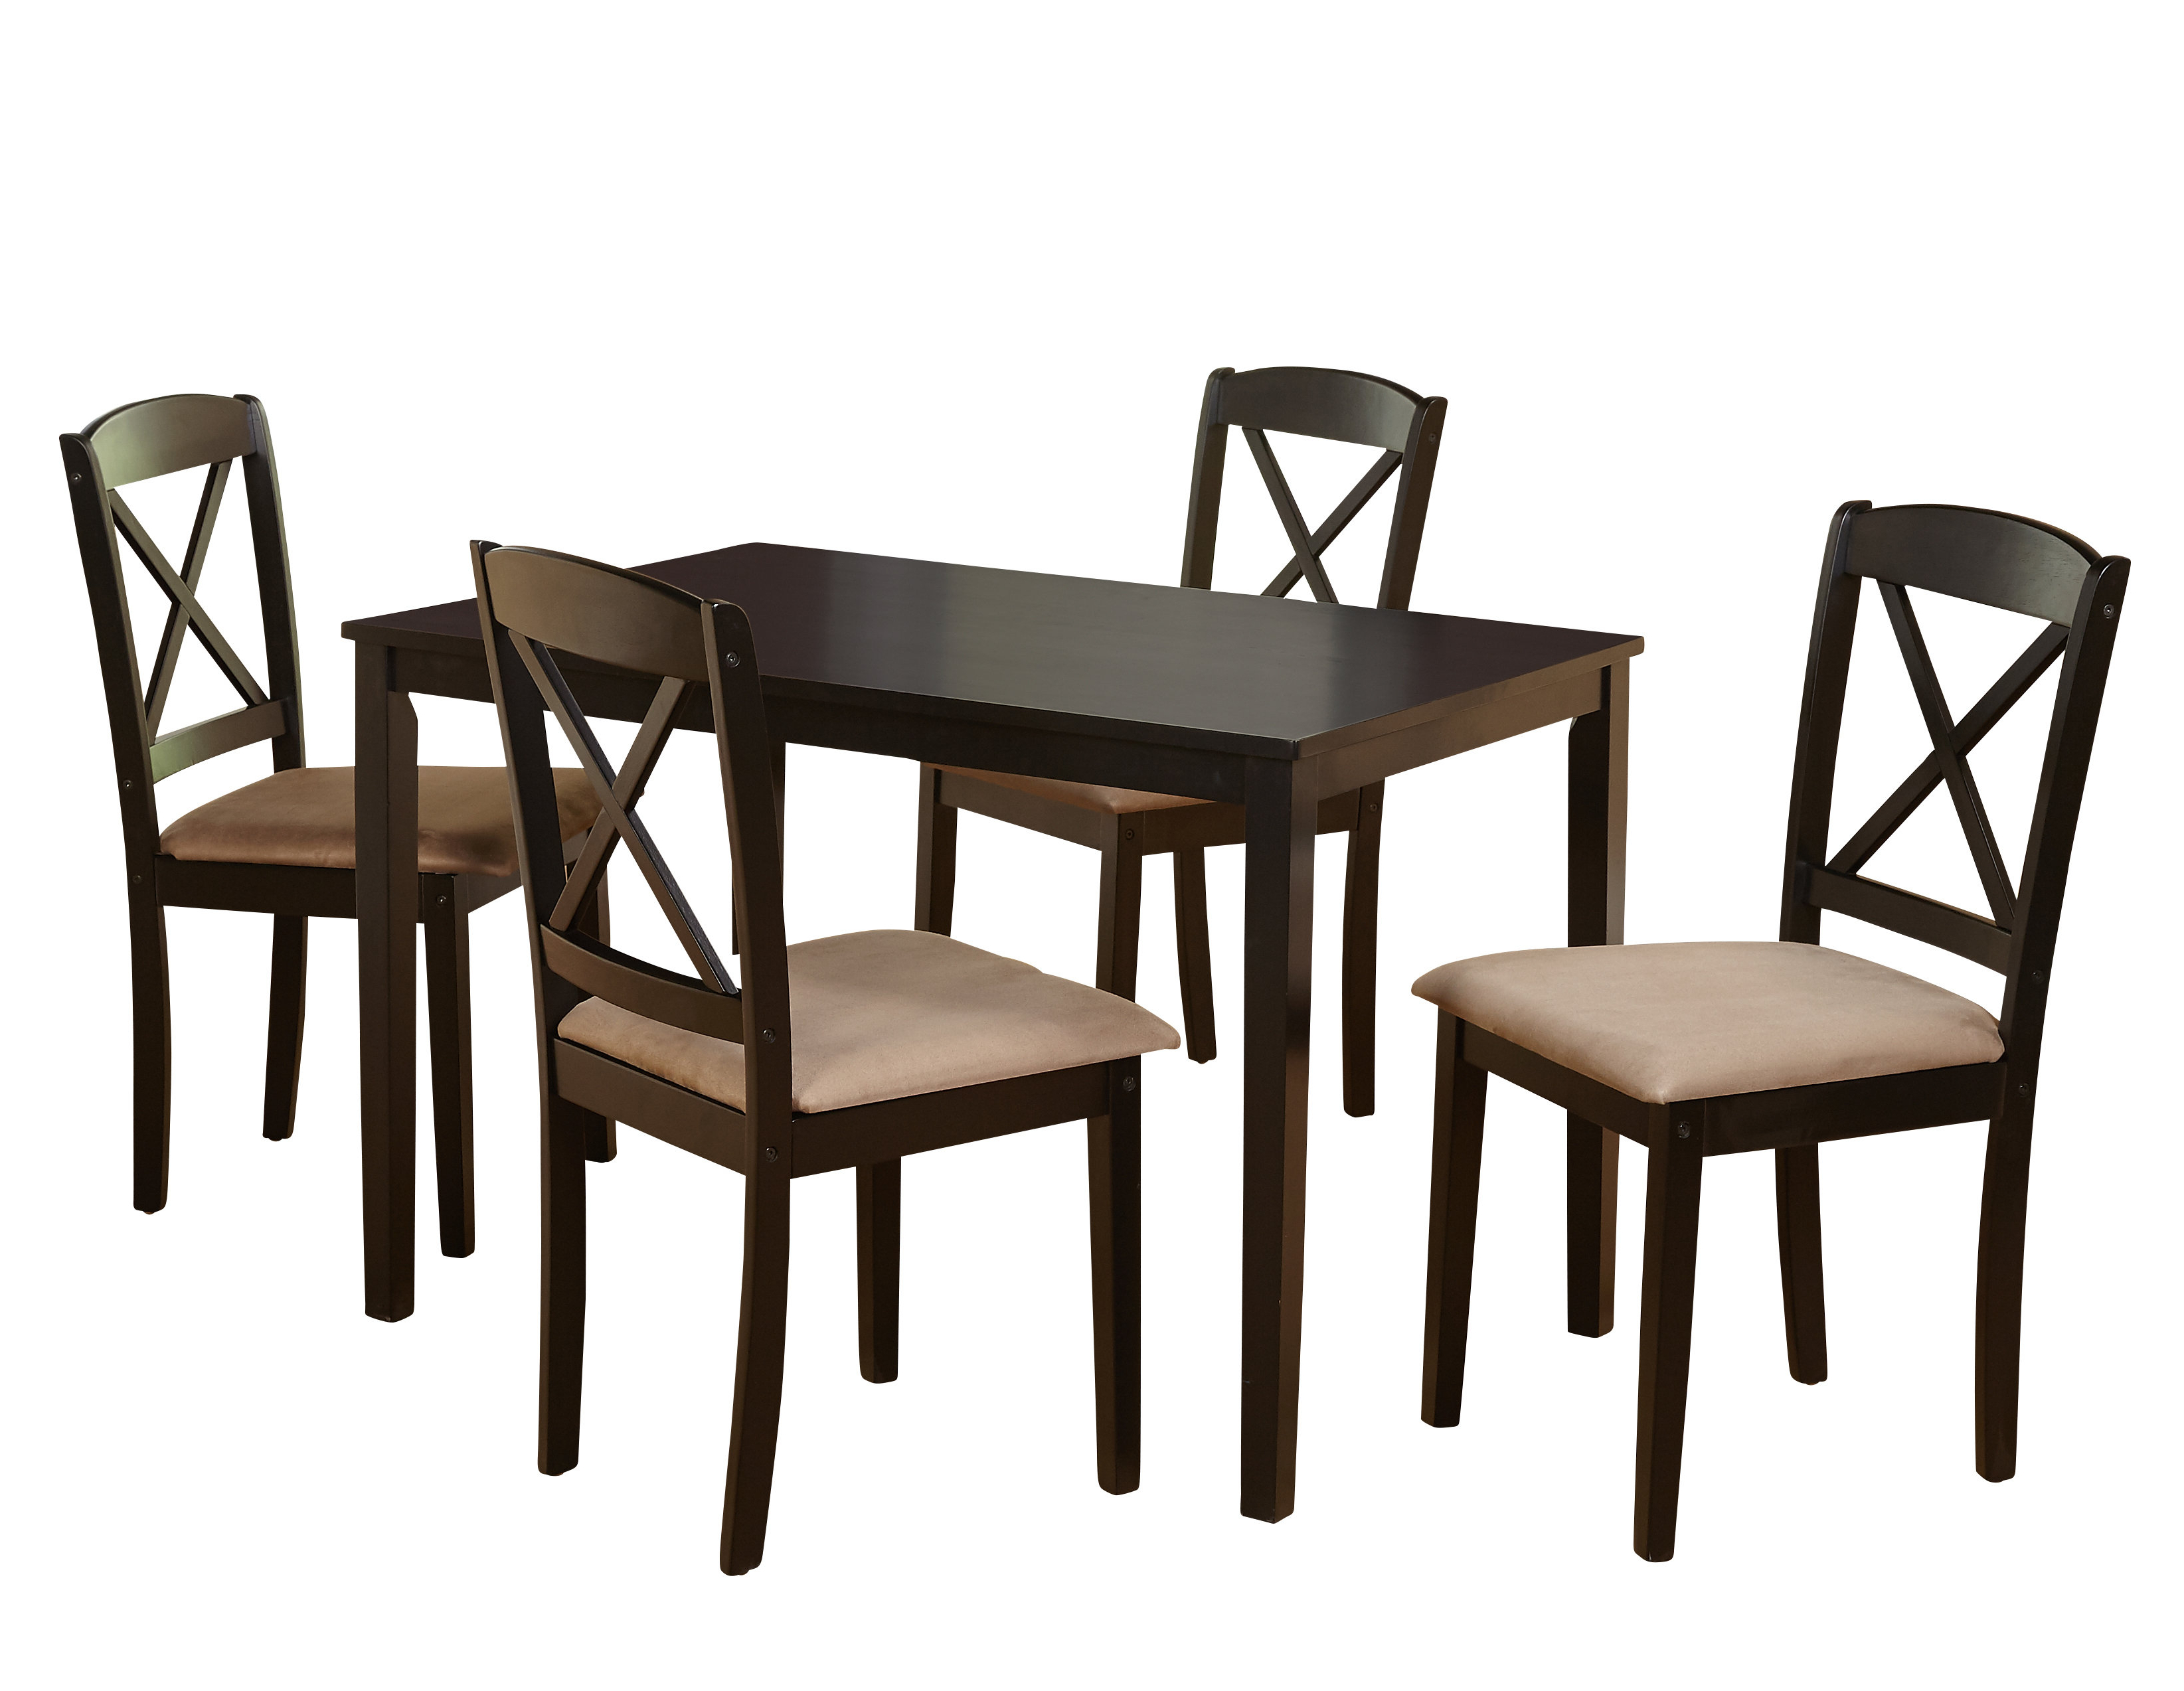 Scarlett 5 Piece Dining Set Regarding Most Recently Released Pattonsburg 5 Piece Dining Sets (View 18 of 20)